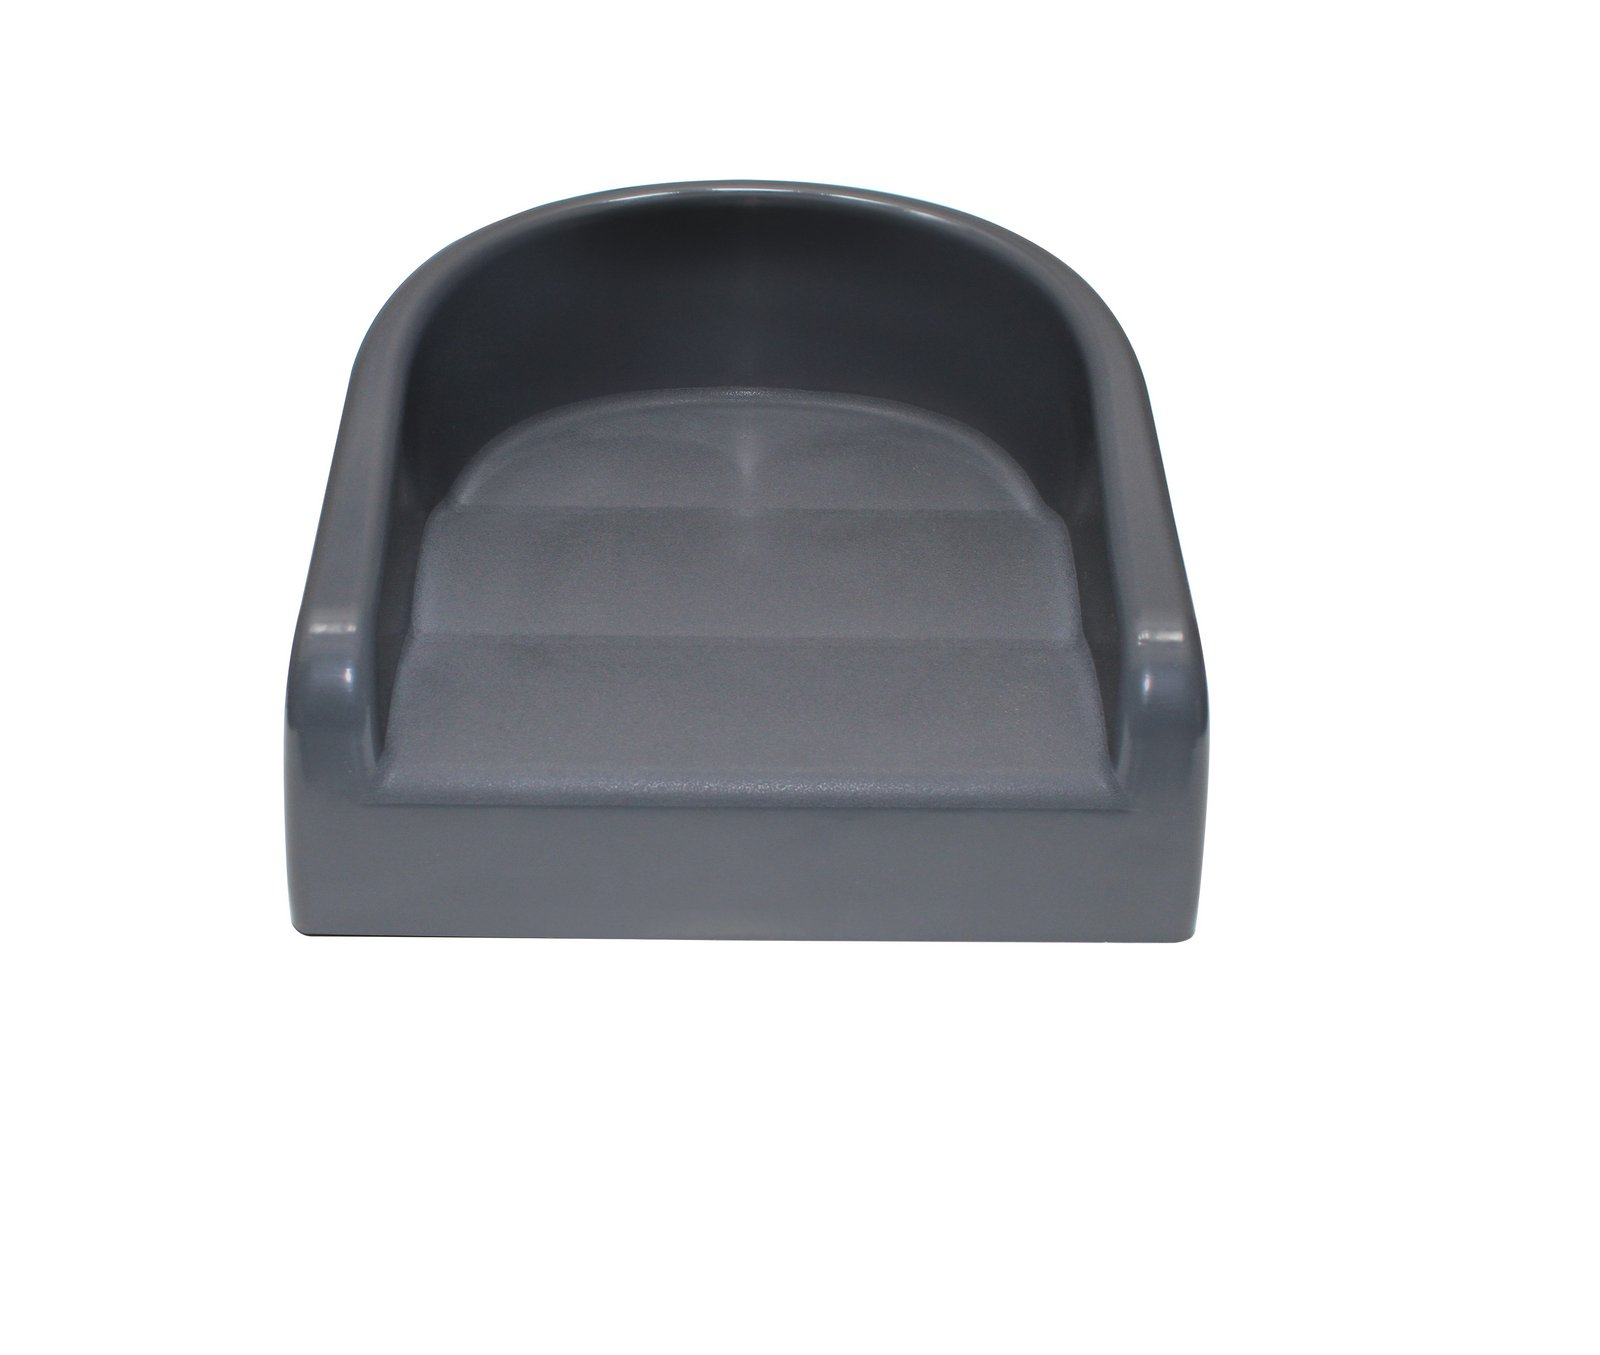 Prince Lionheart Soft Booster Seat, Charcoal Grey by Prince Lionheart